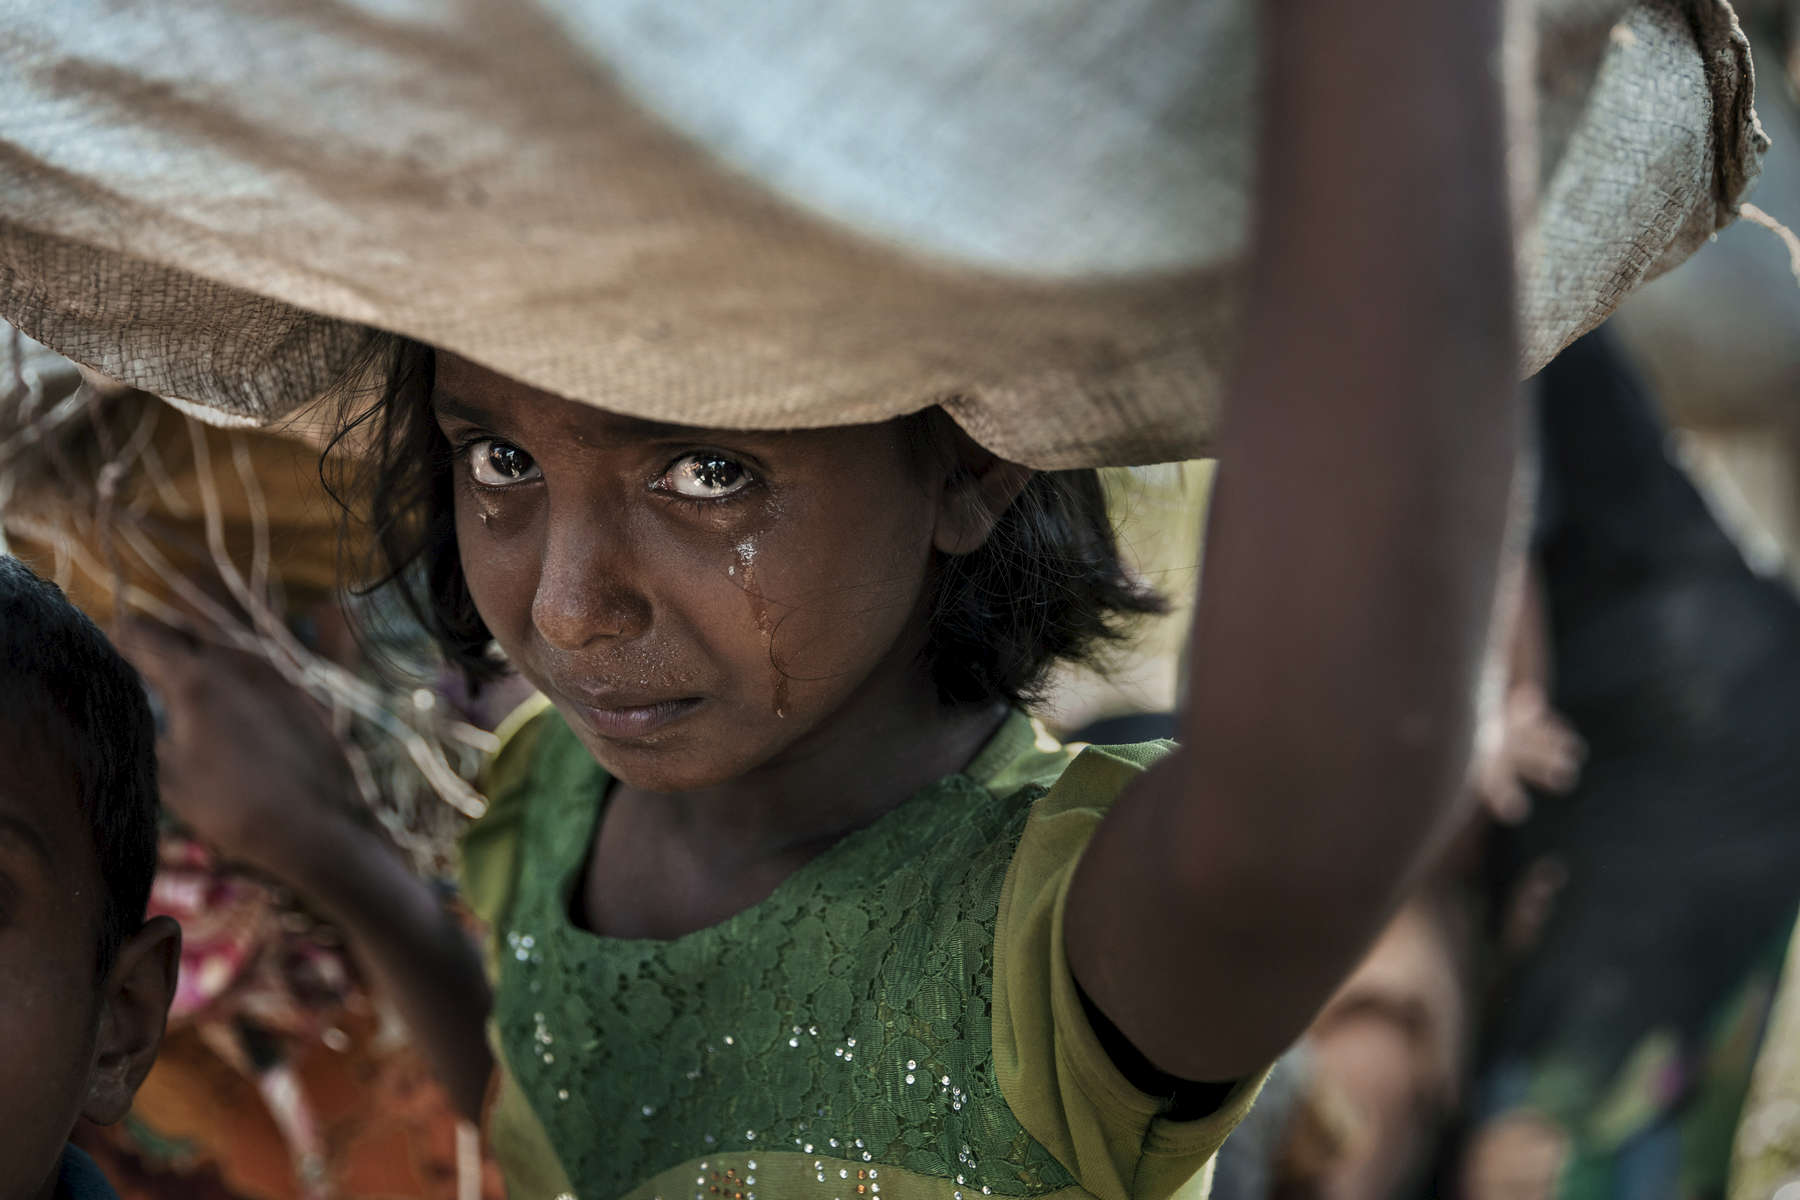 PALONG KHALI, BANGLADESH - OCTOBER 16: A Rohingya girl cries, traumatized after days of walking, with little sleep, as refugees fleeing from Myanmar wait in the hot sun on a muddy rice field near Palang Khali, Cox's Bazar, Bangladesh. Well over a half a million Rohingya refugees have fled into Bangladesh since late August during the outbreak of violence in Rakhine state causing a humanitarian crisis in the region with continued challenges for aid agencies.